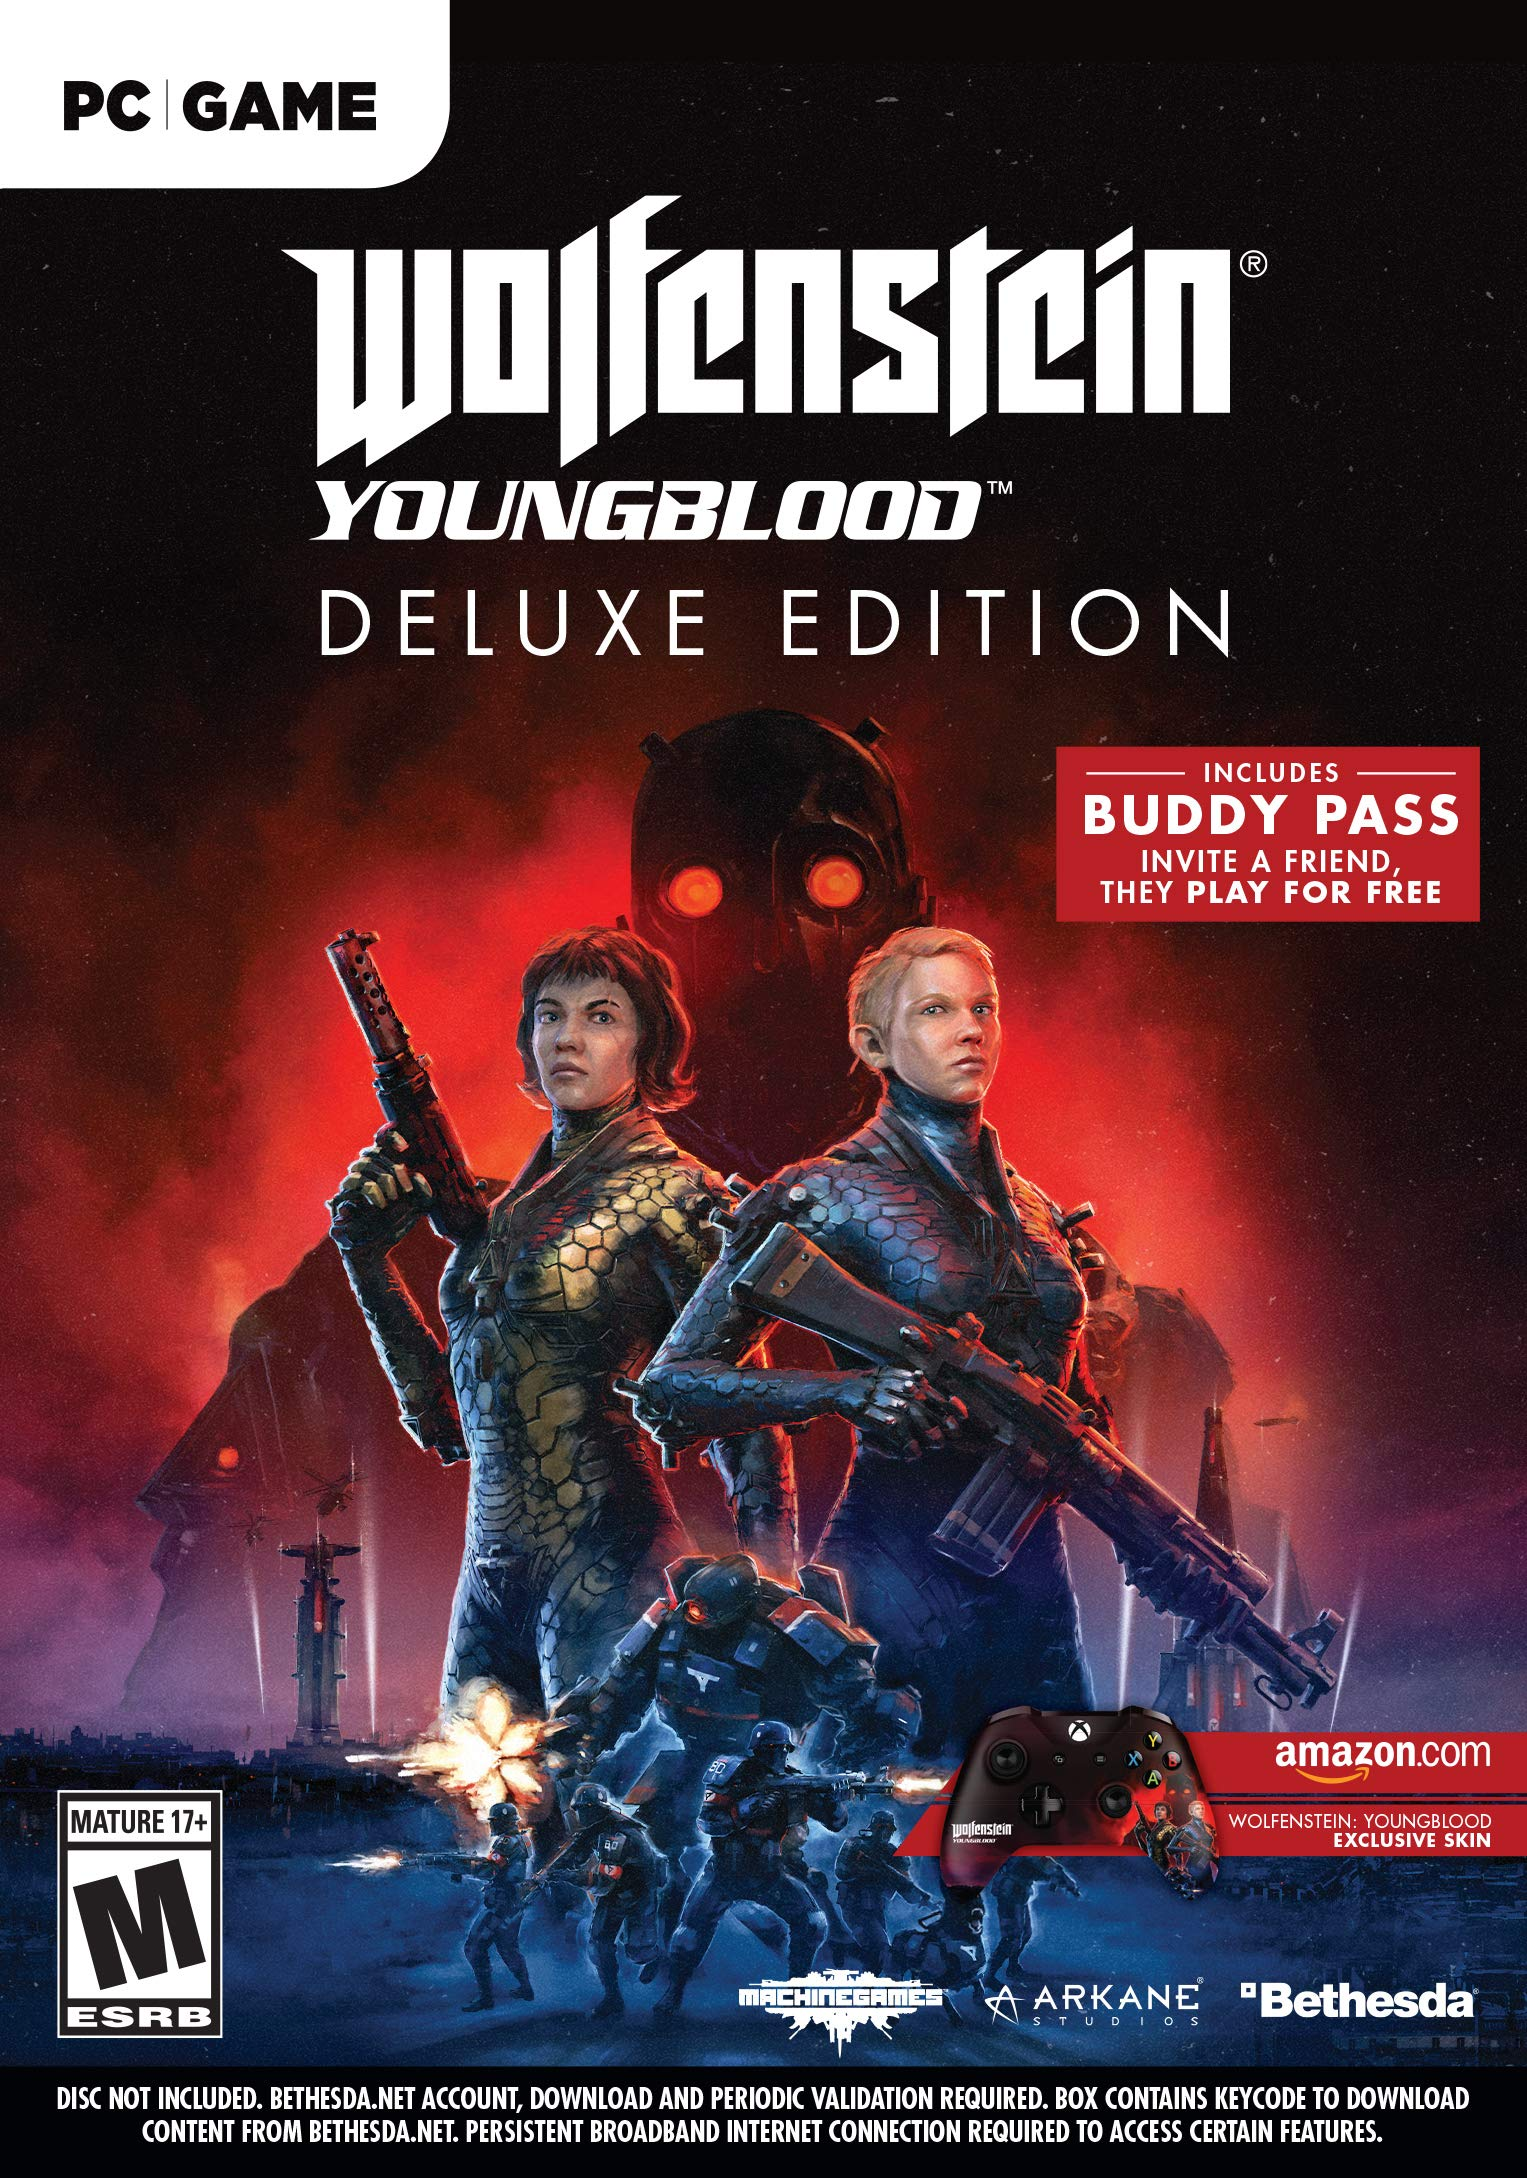 Wolfenstein: Youngblood - PC Deluxe Edition [Amazon Exclusive Bonus] by Bethesda